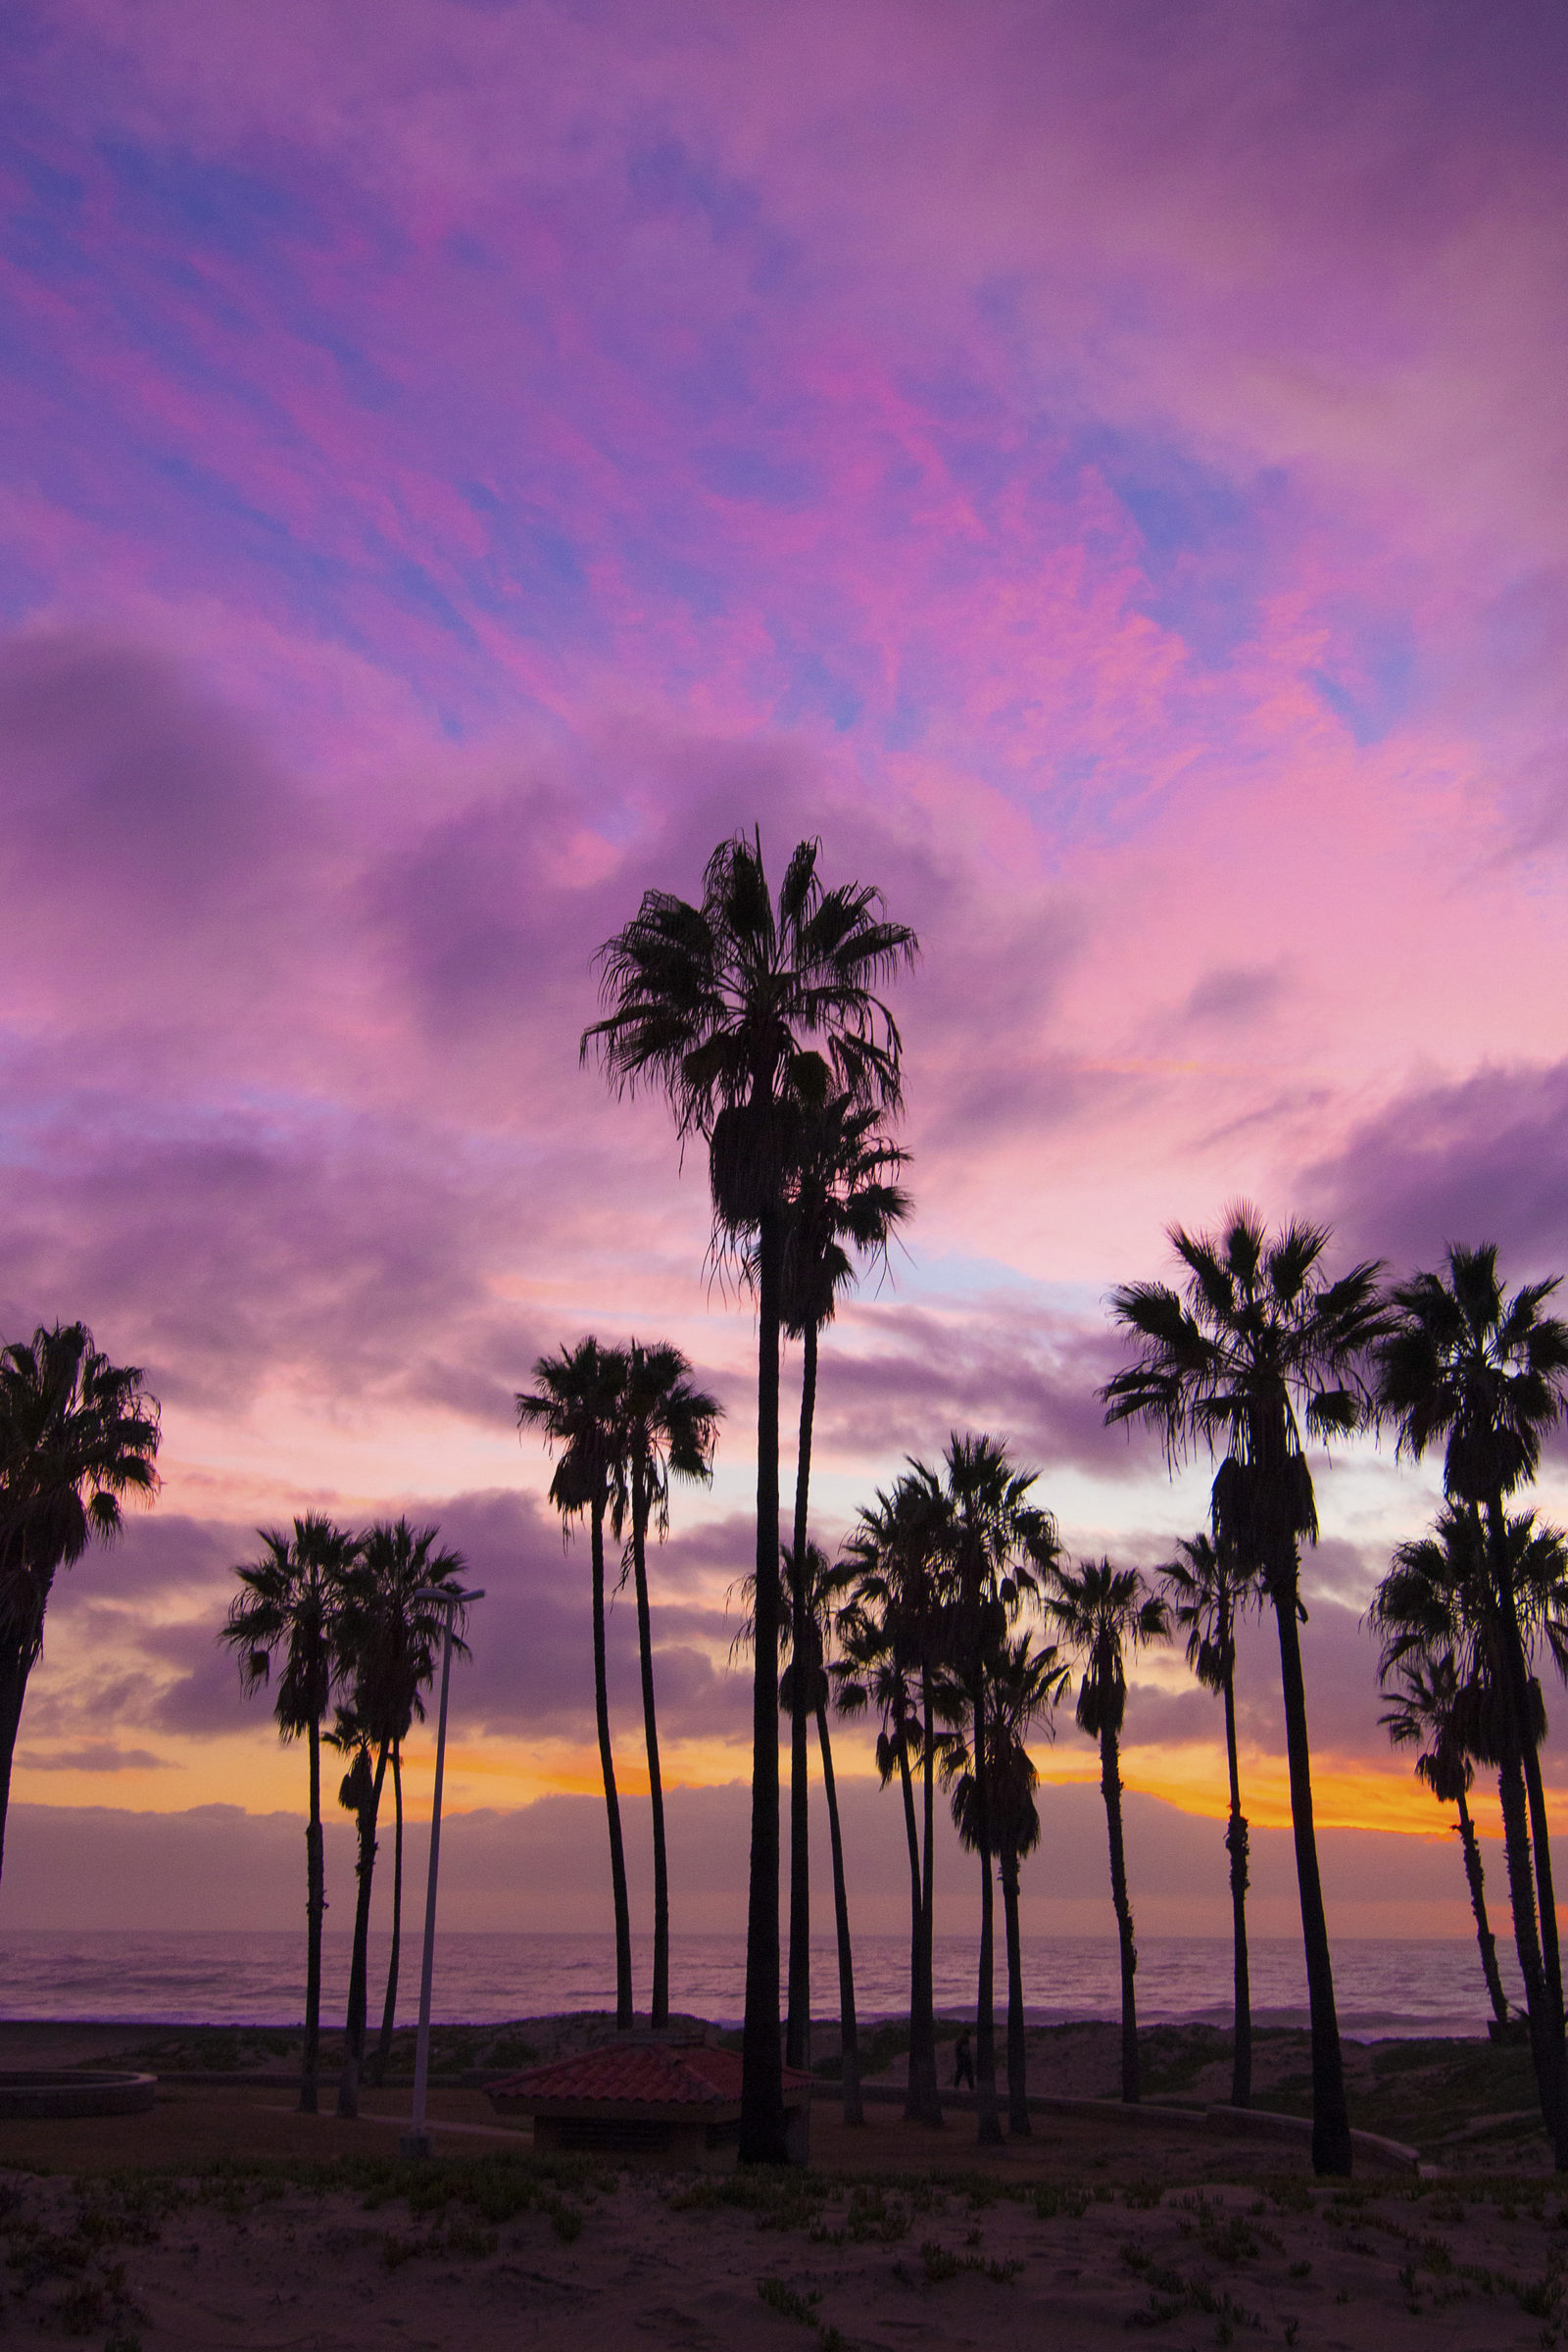 Pacific sunset with palms